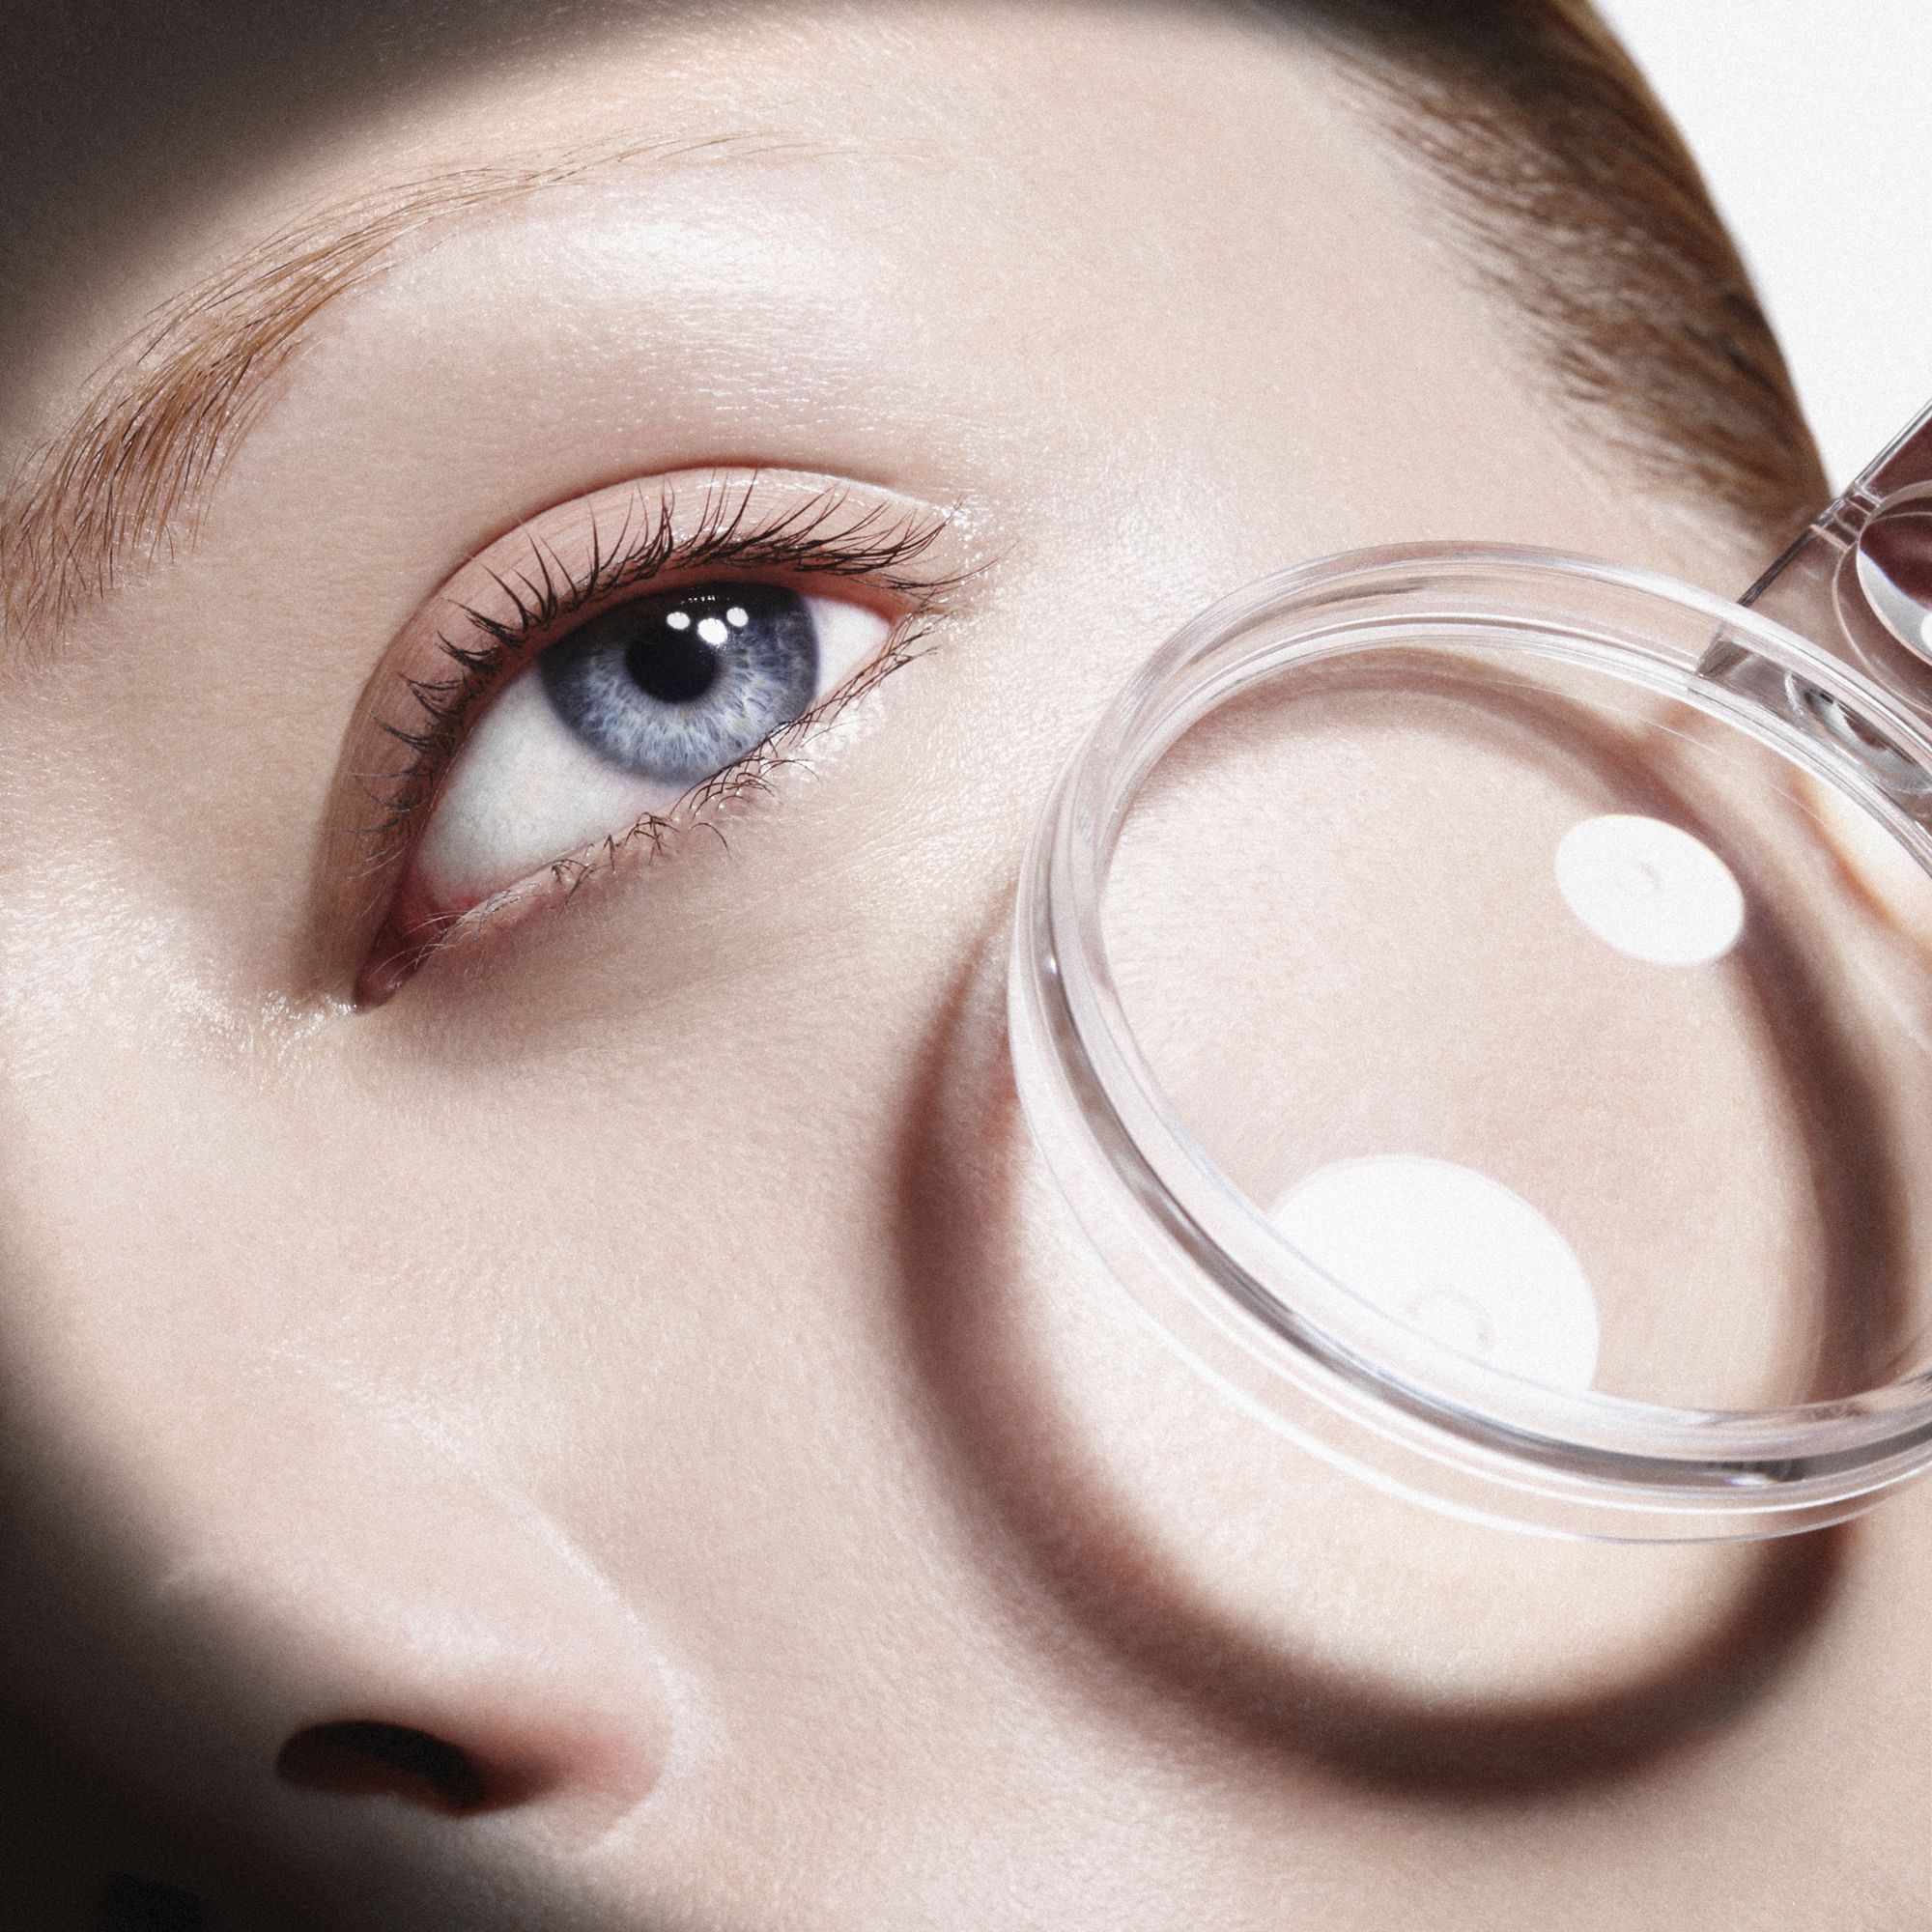 Anti Aging Skin Treatments How To Get Flawless Skin